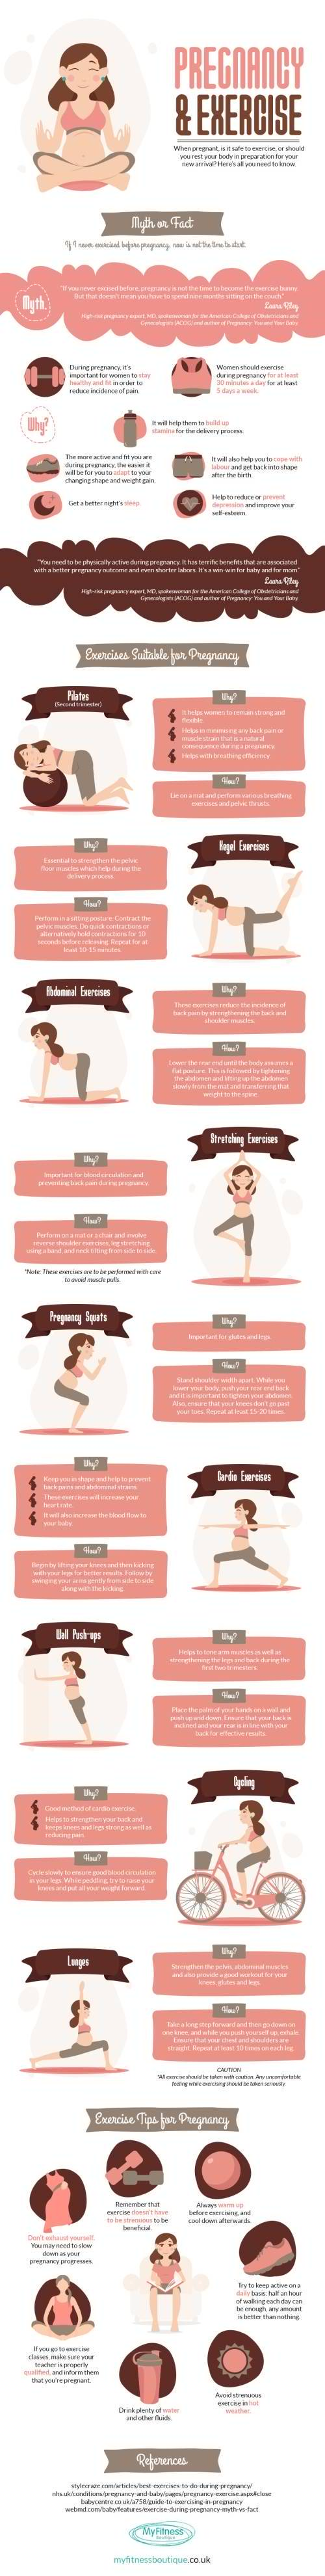 500x3961xpregnancy-and-fitness-infographic.jpg.pagespeed.ic.gLrQQu6p1W